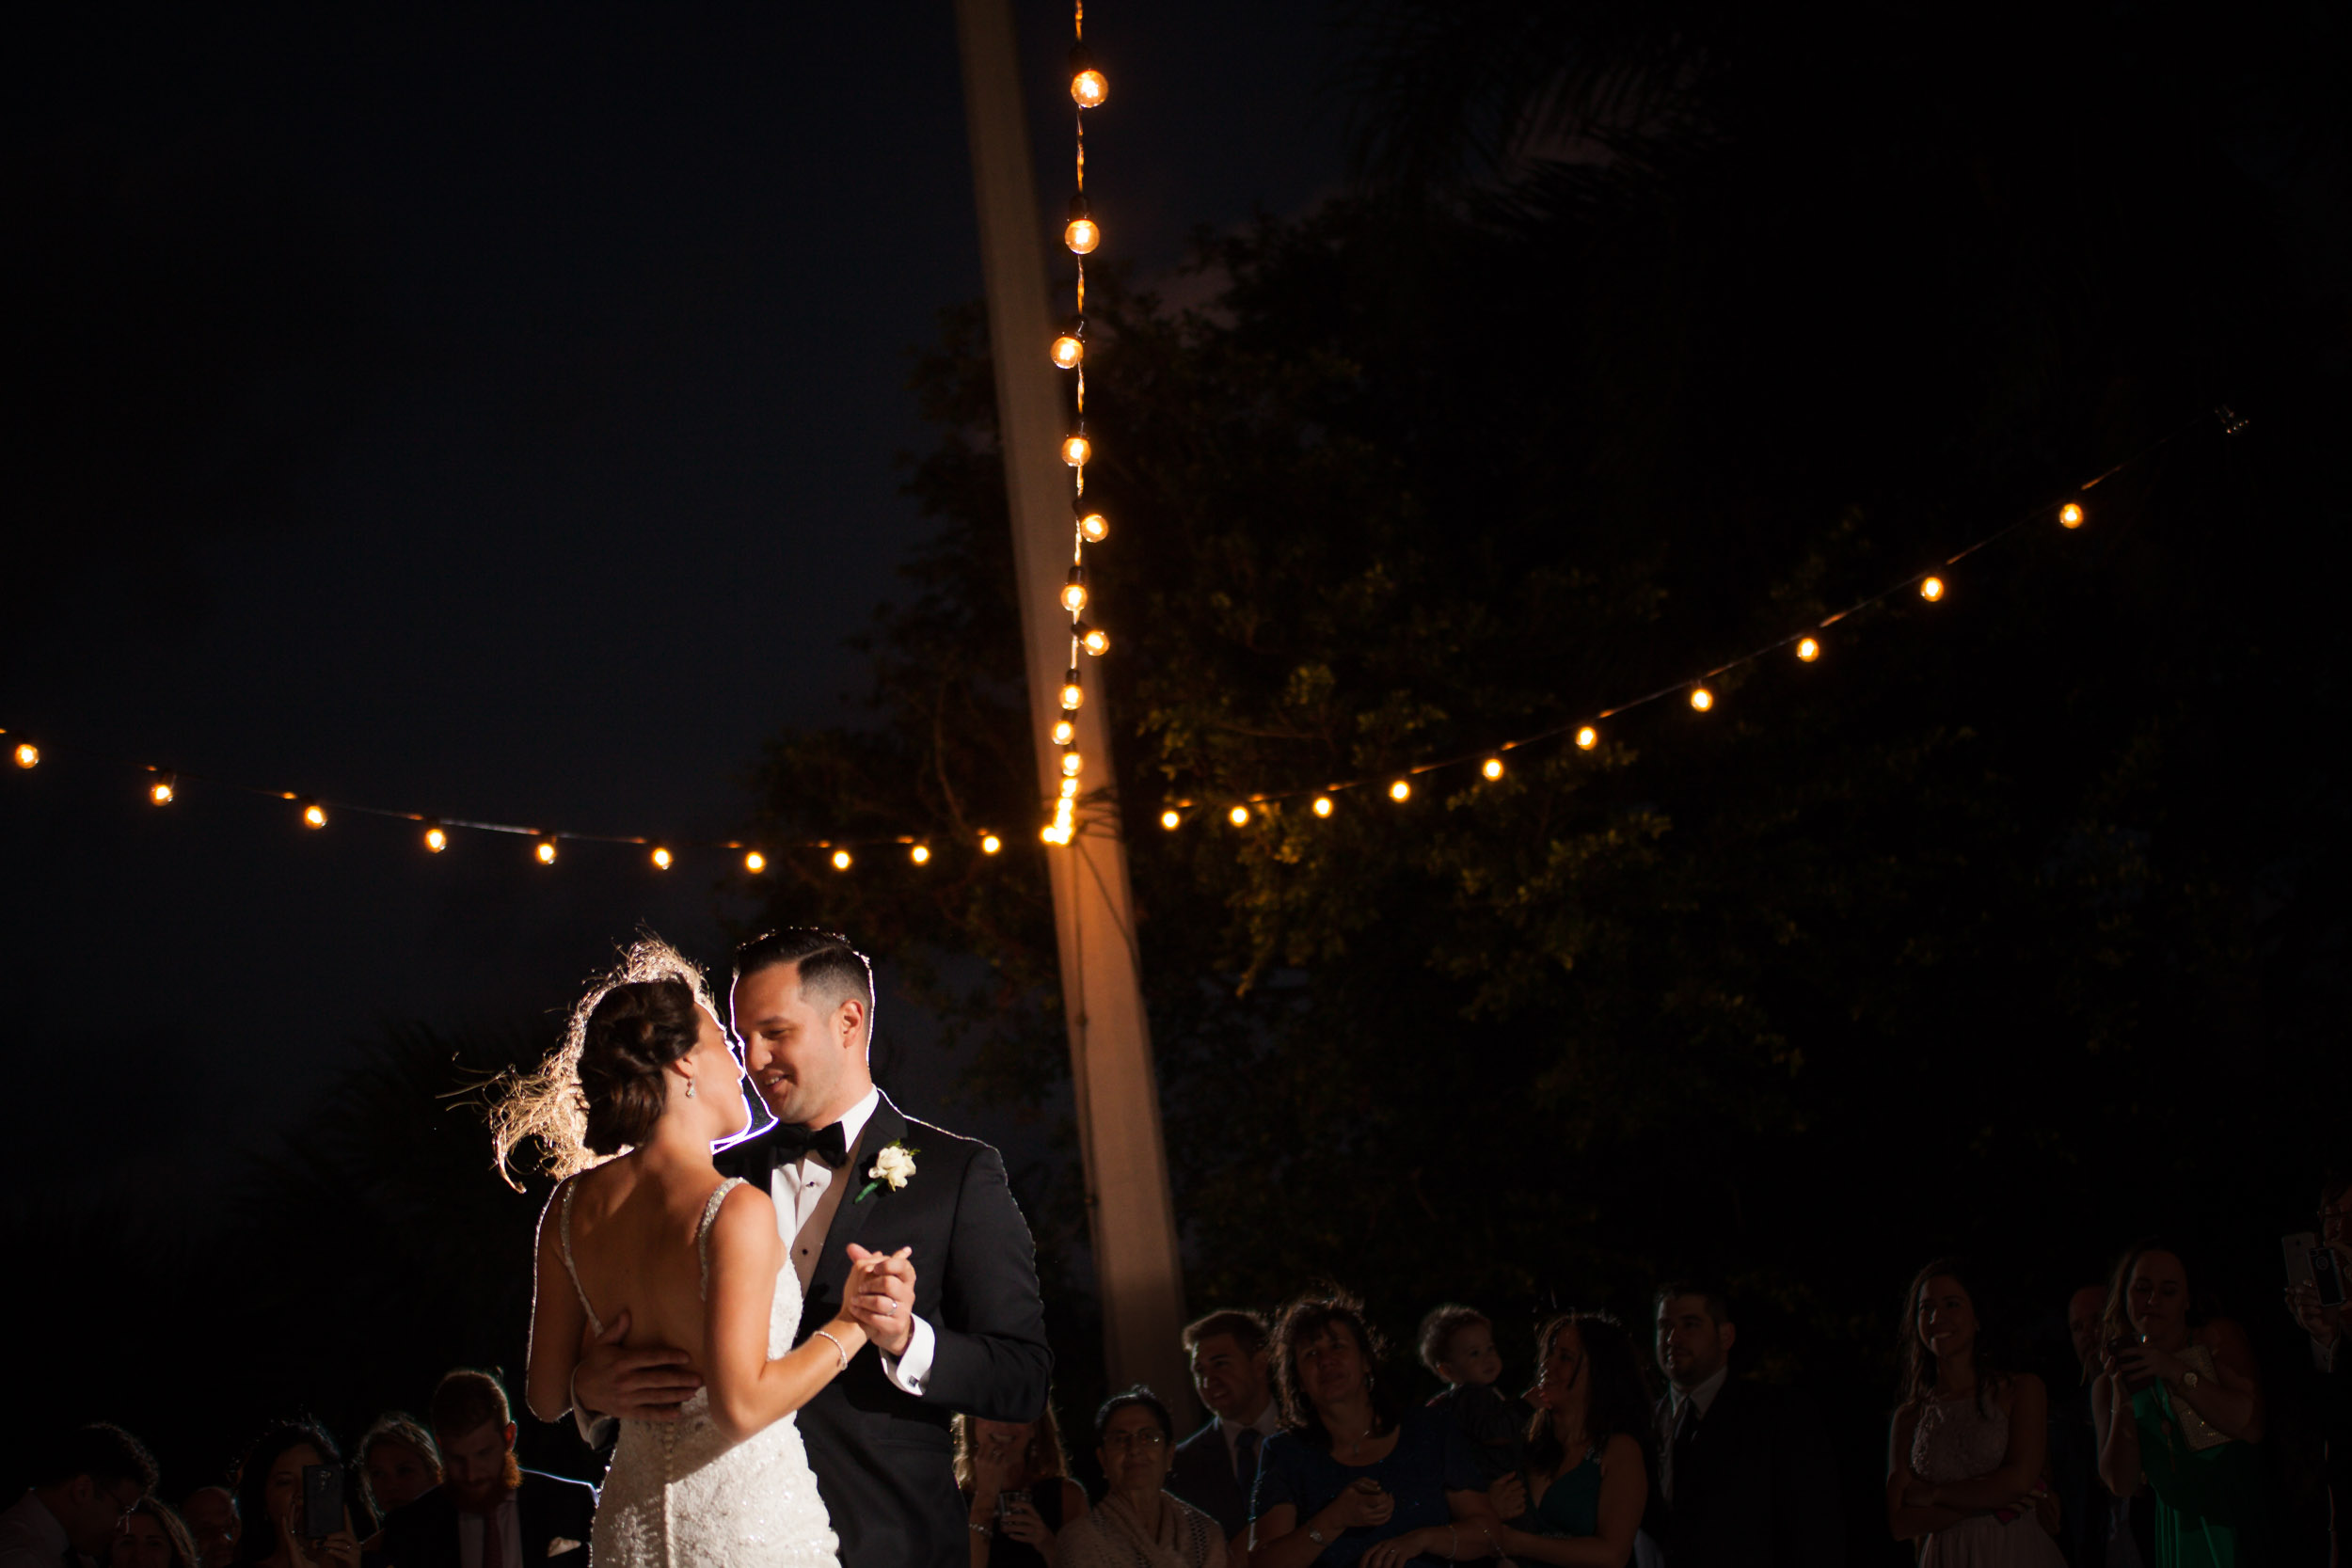 Flordia-Wedding-Photography-61.jpg